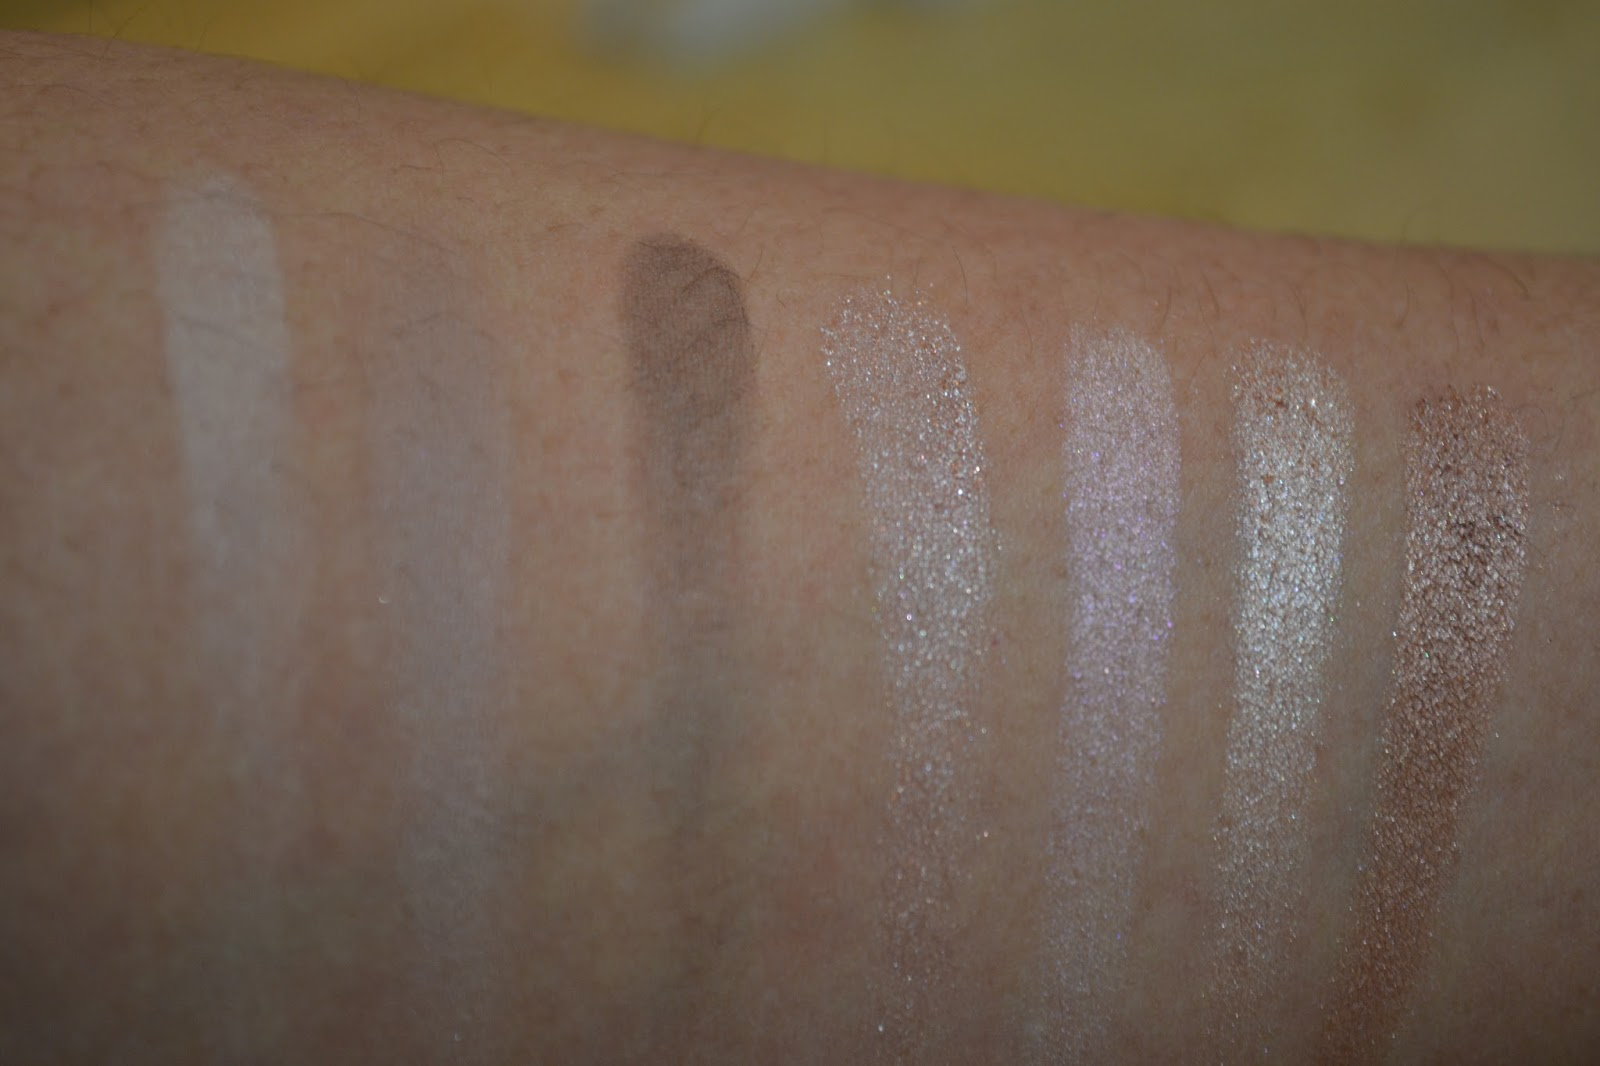 Marc Jacobs' The Lolita Palette swatches